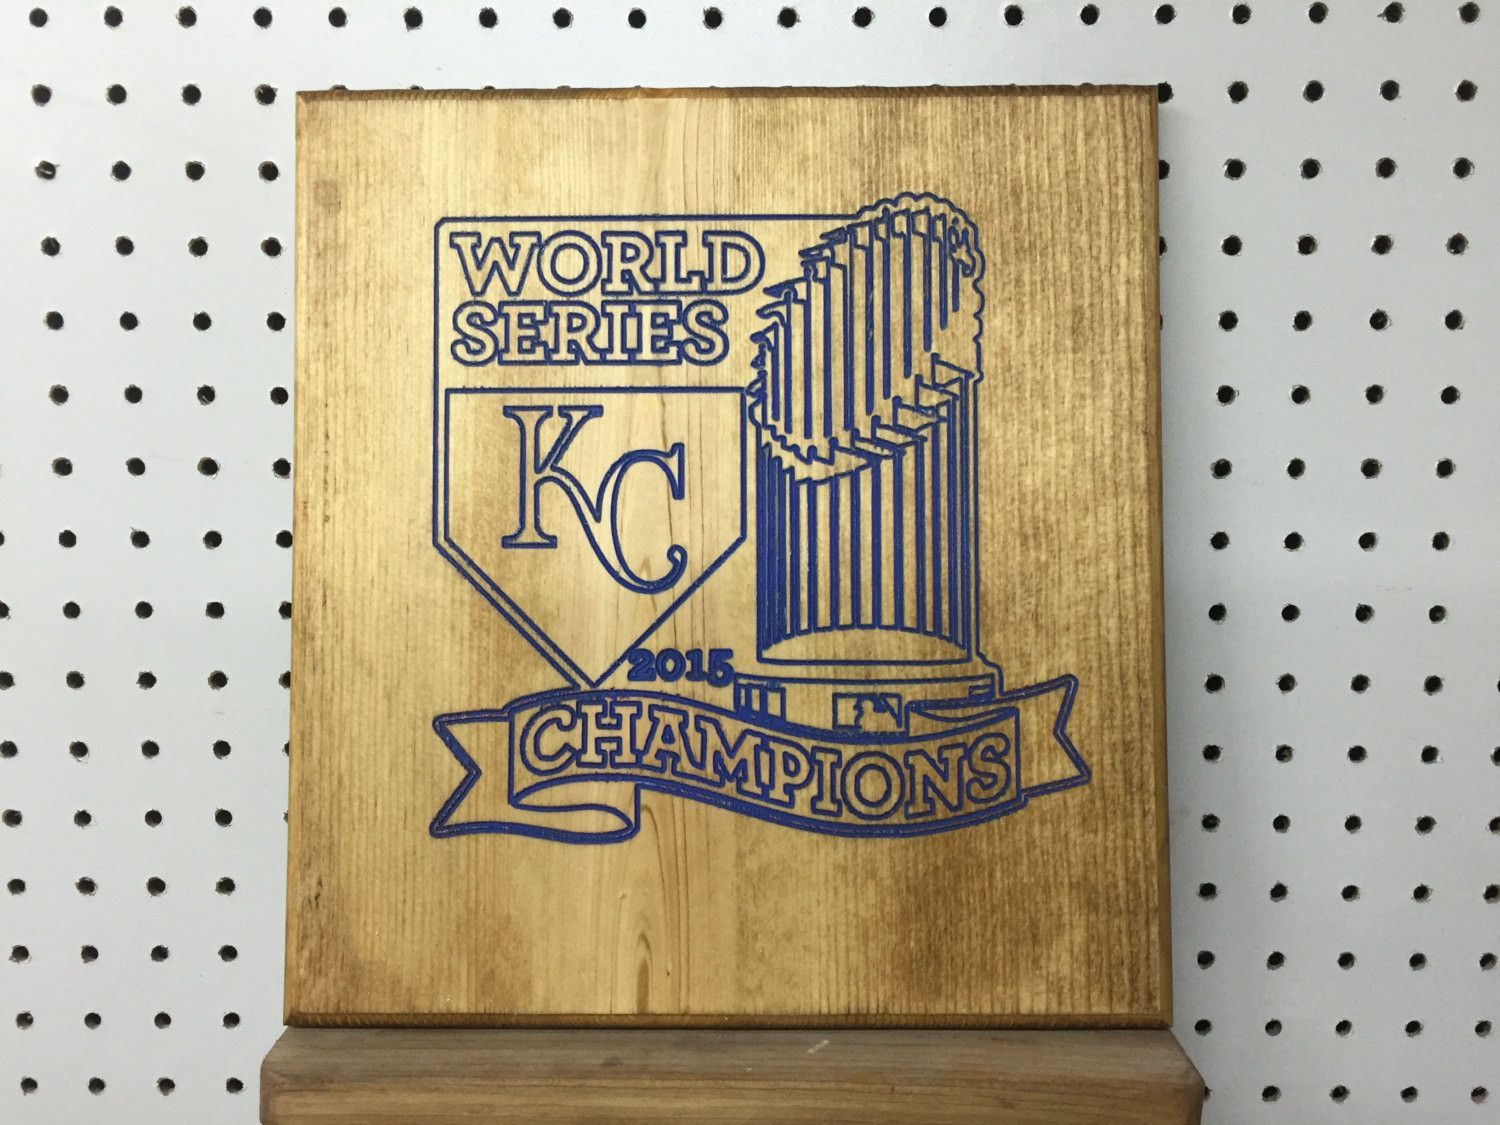 Carved Engraved Wood Sign World Series KC Royals 2015 Champions Any saying can be made..just ask! KC Royals Sign